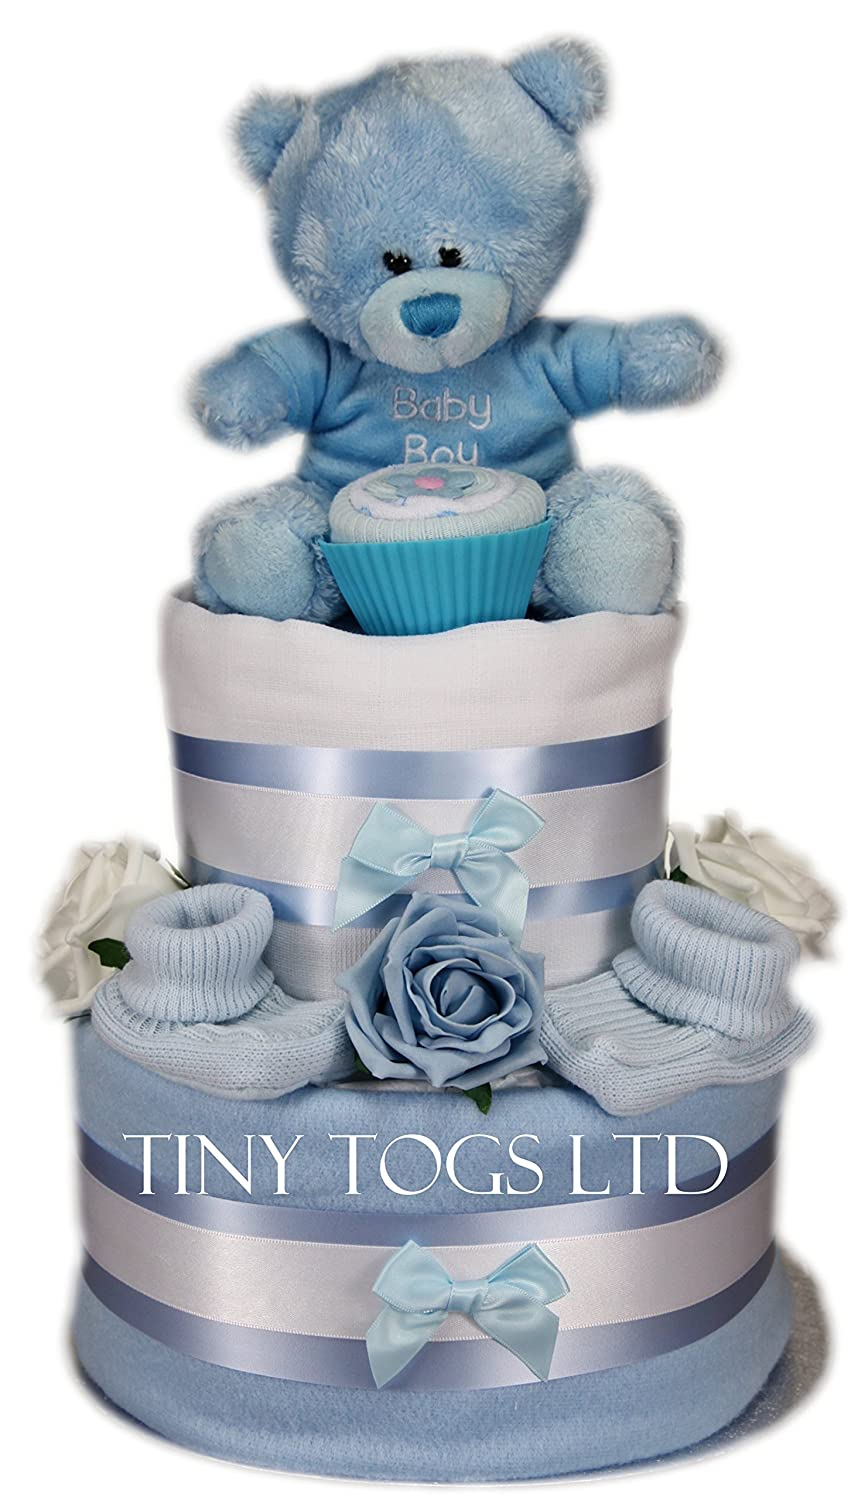 Baby Boy Two Tier Nappy Cake New Born Baby Shower Gift with Sock Cupcake and Blue Teddy Bear Tiny Togs Ltd